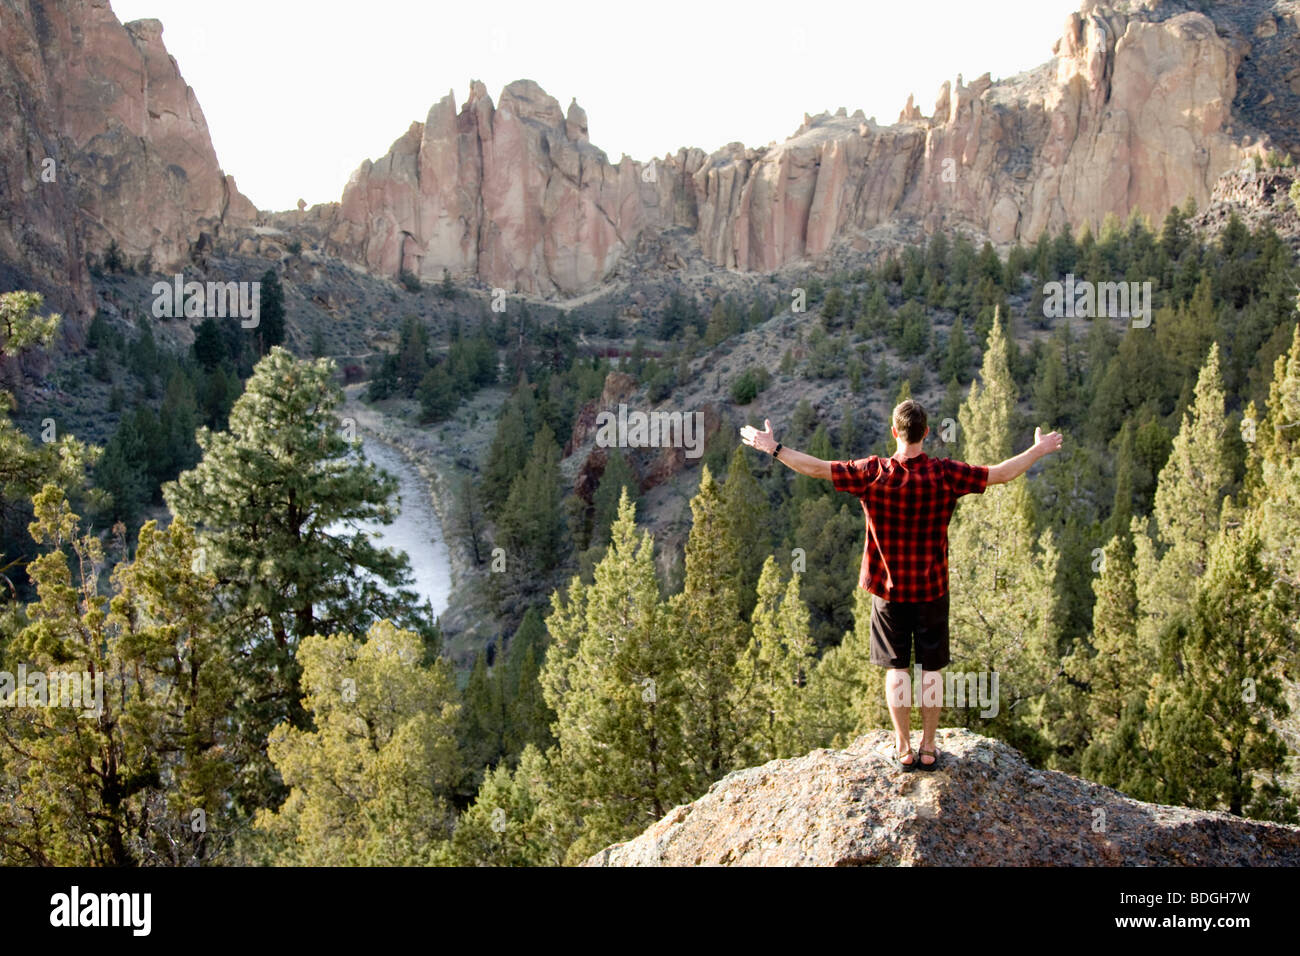 A man in a plaid shirt stands with his arms wide open overlooking the Crooked River Valley below. Stock Photo